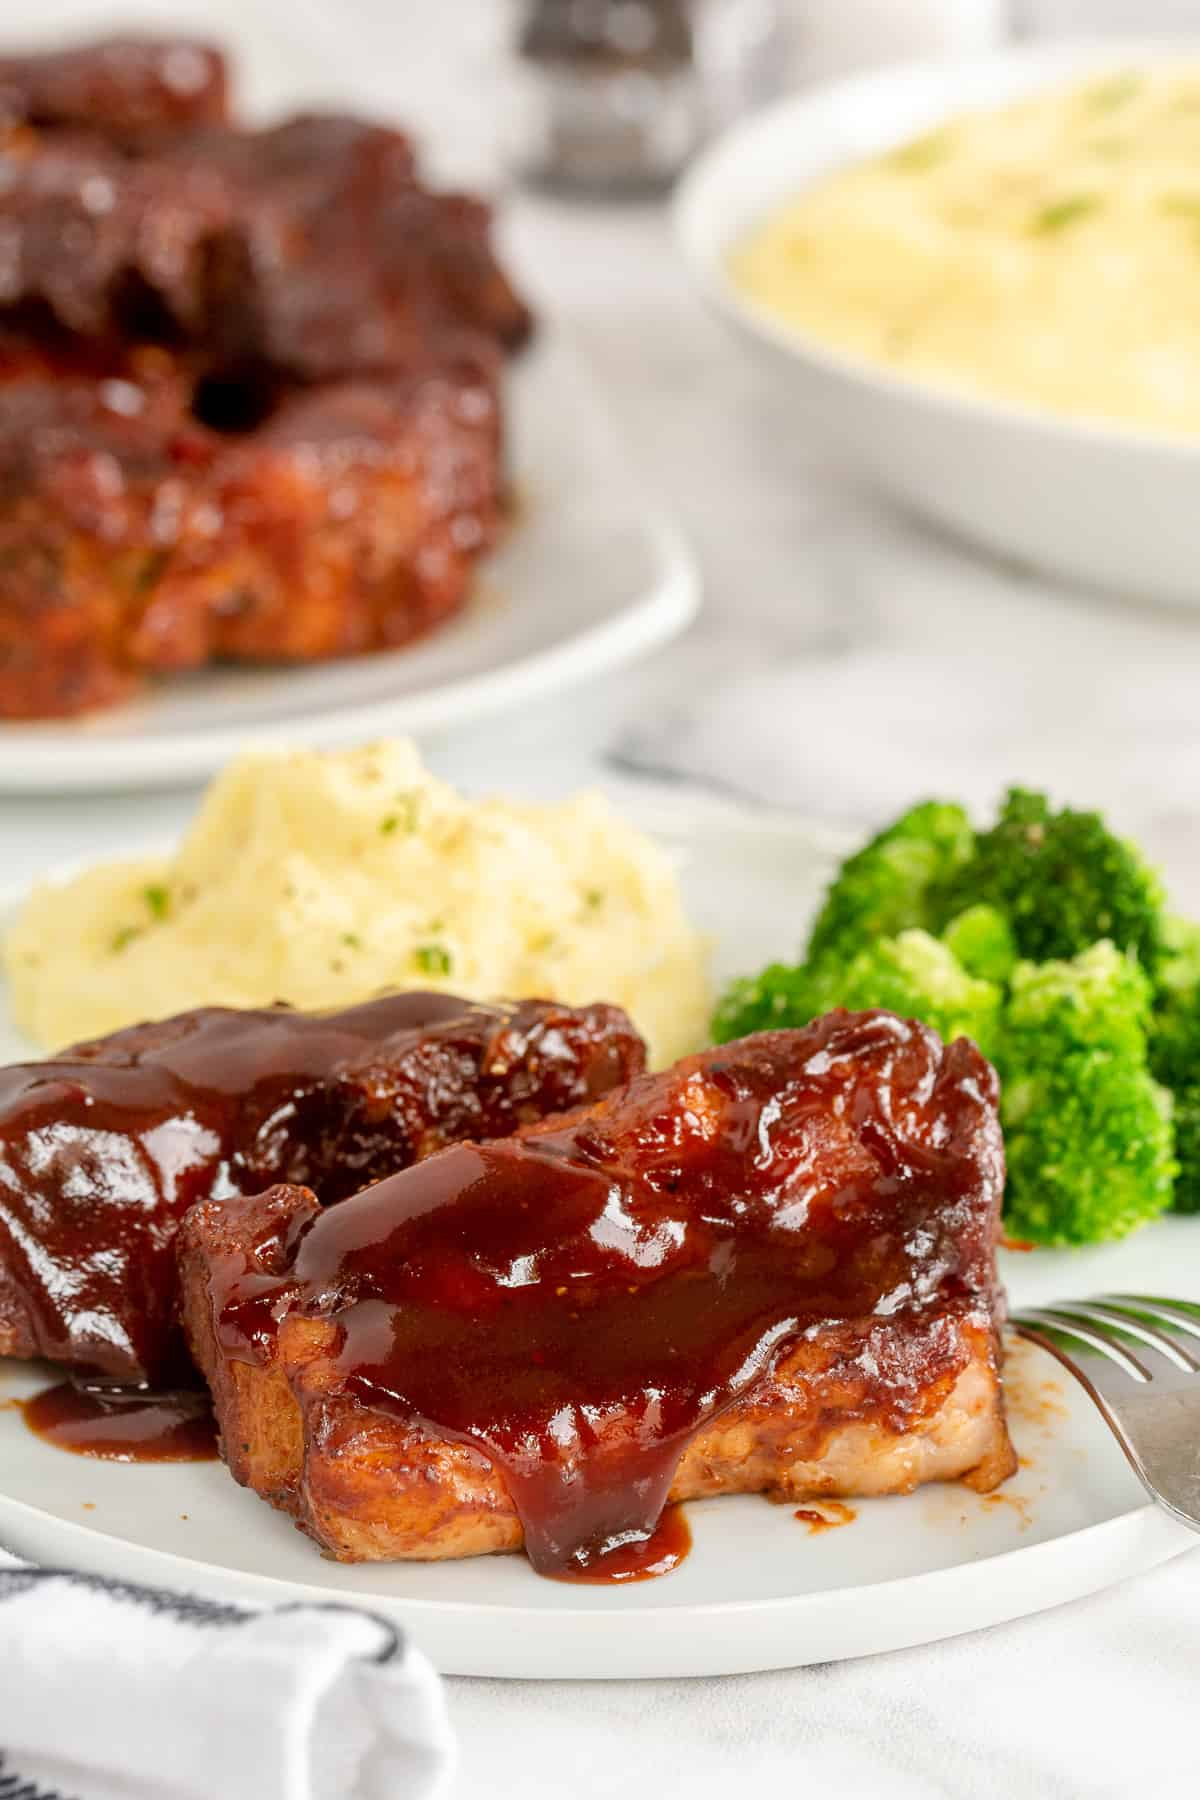 Country style ribs on a plate with mashed potatoes and broccoli.